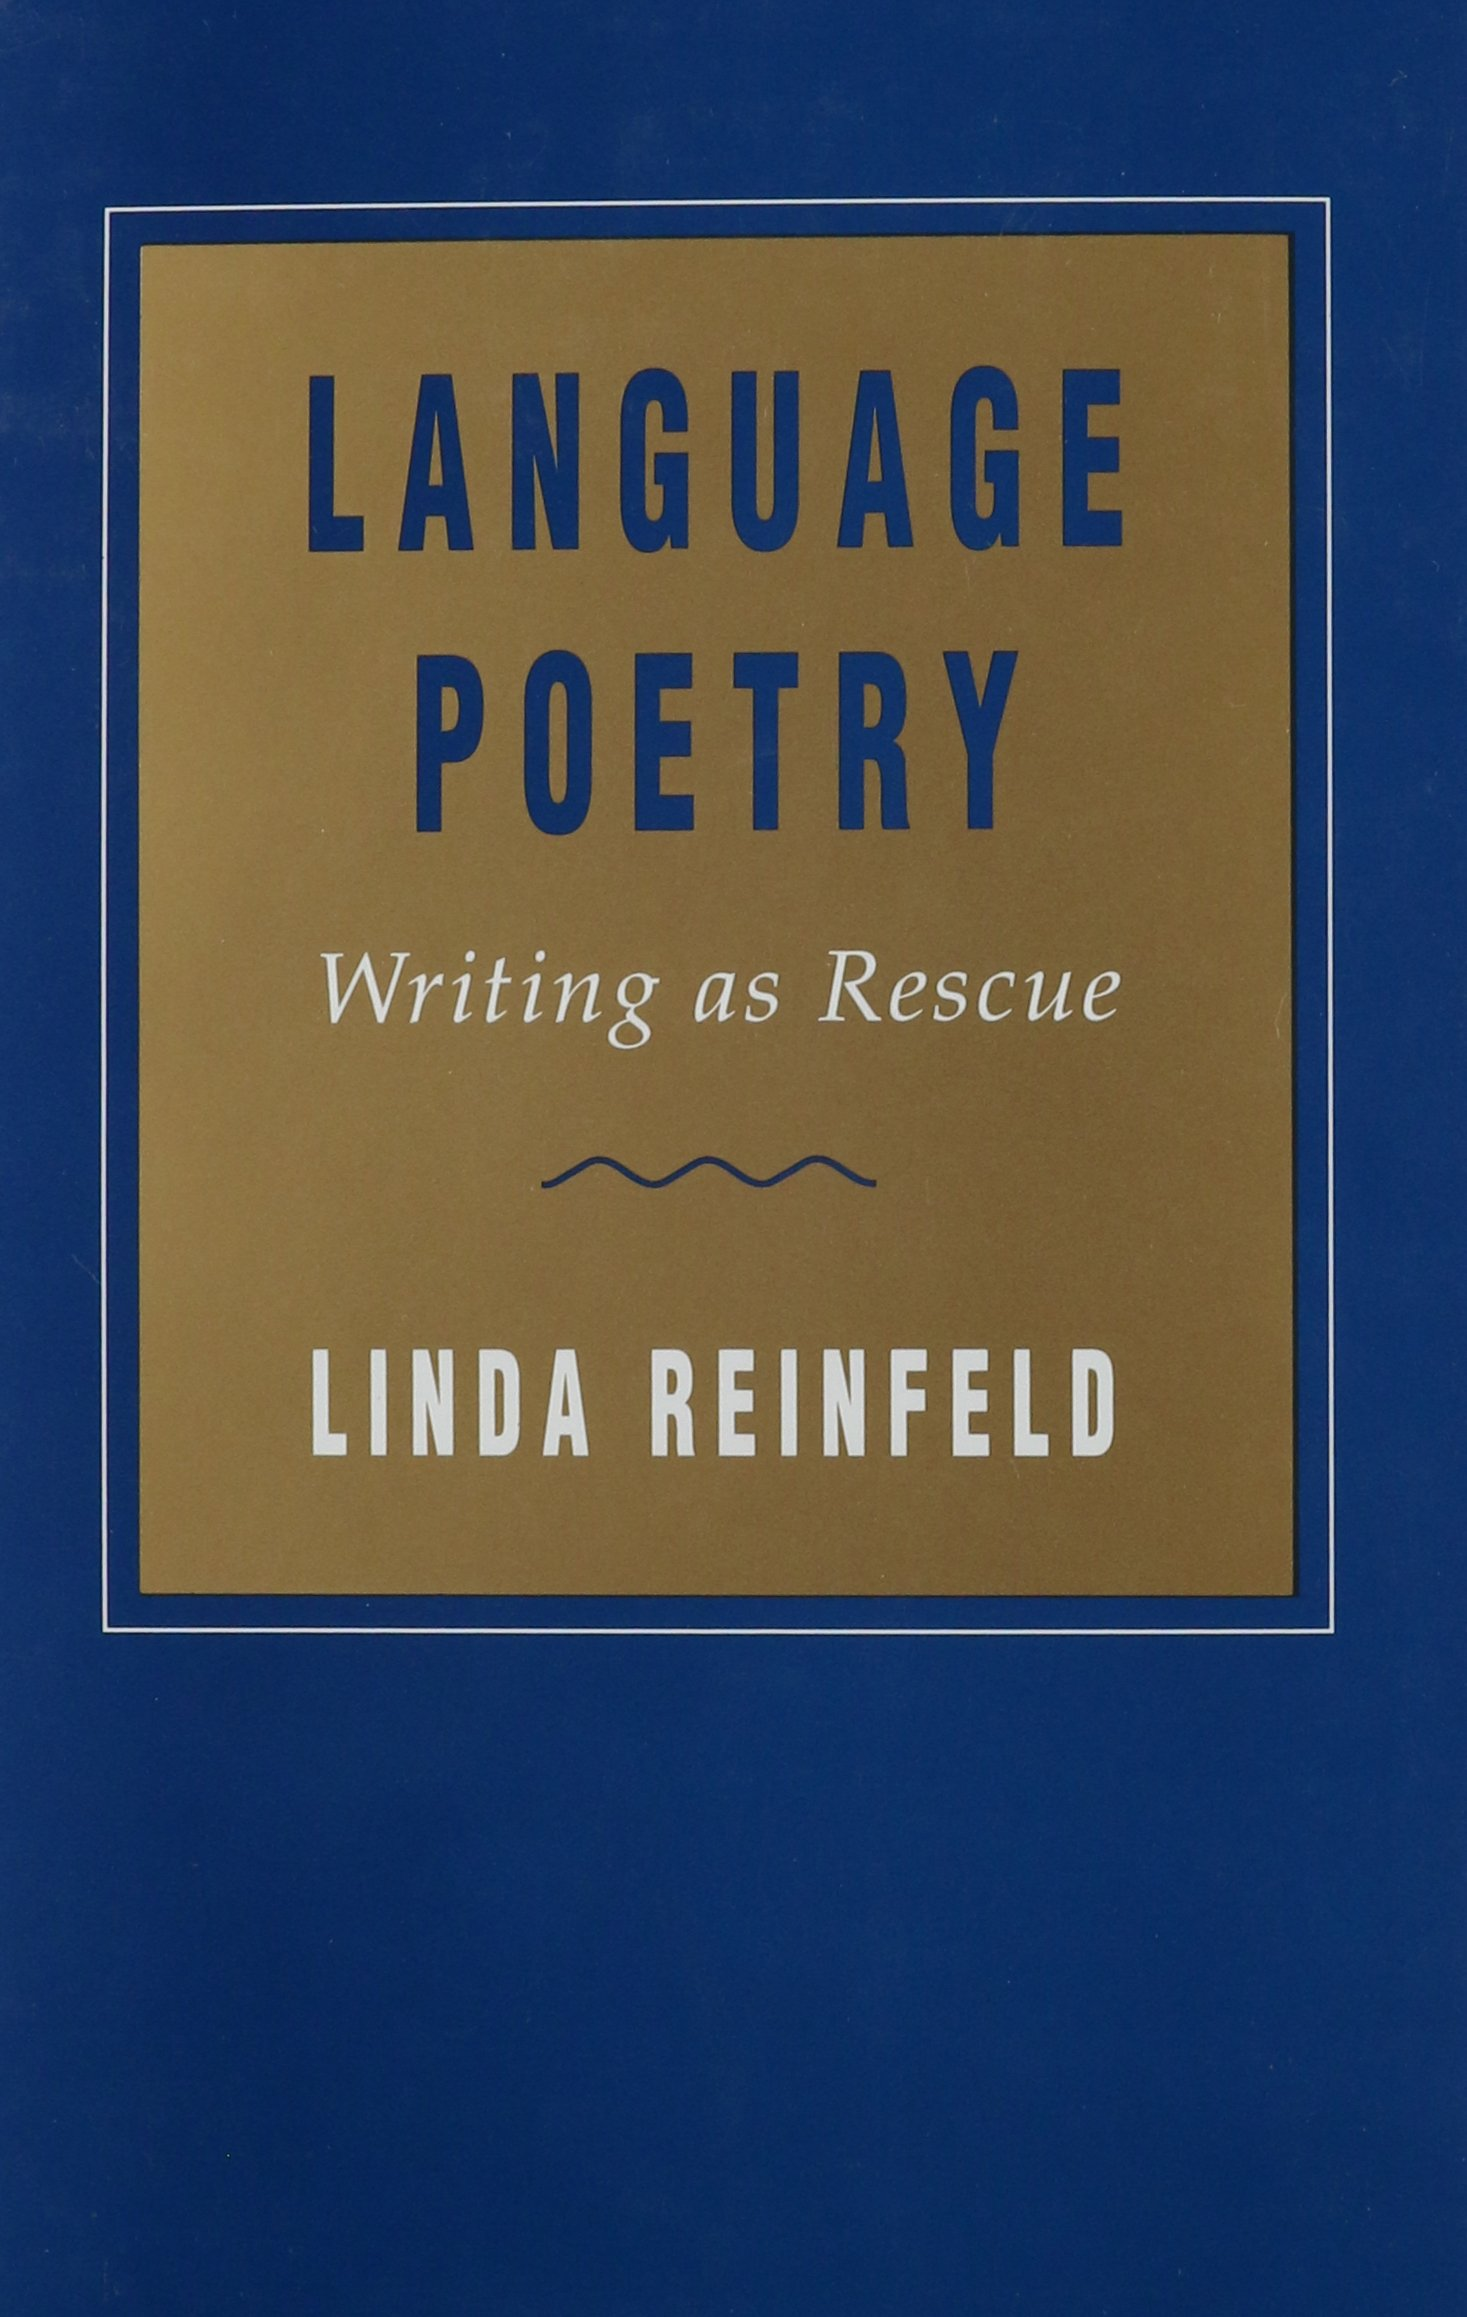 Language Poetry: Writing as Rescue (Horizons in Theory and American Culture) by Brand: Louisiana State Univ Pr